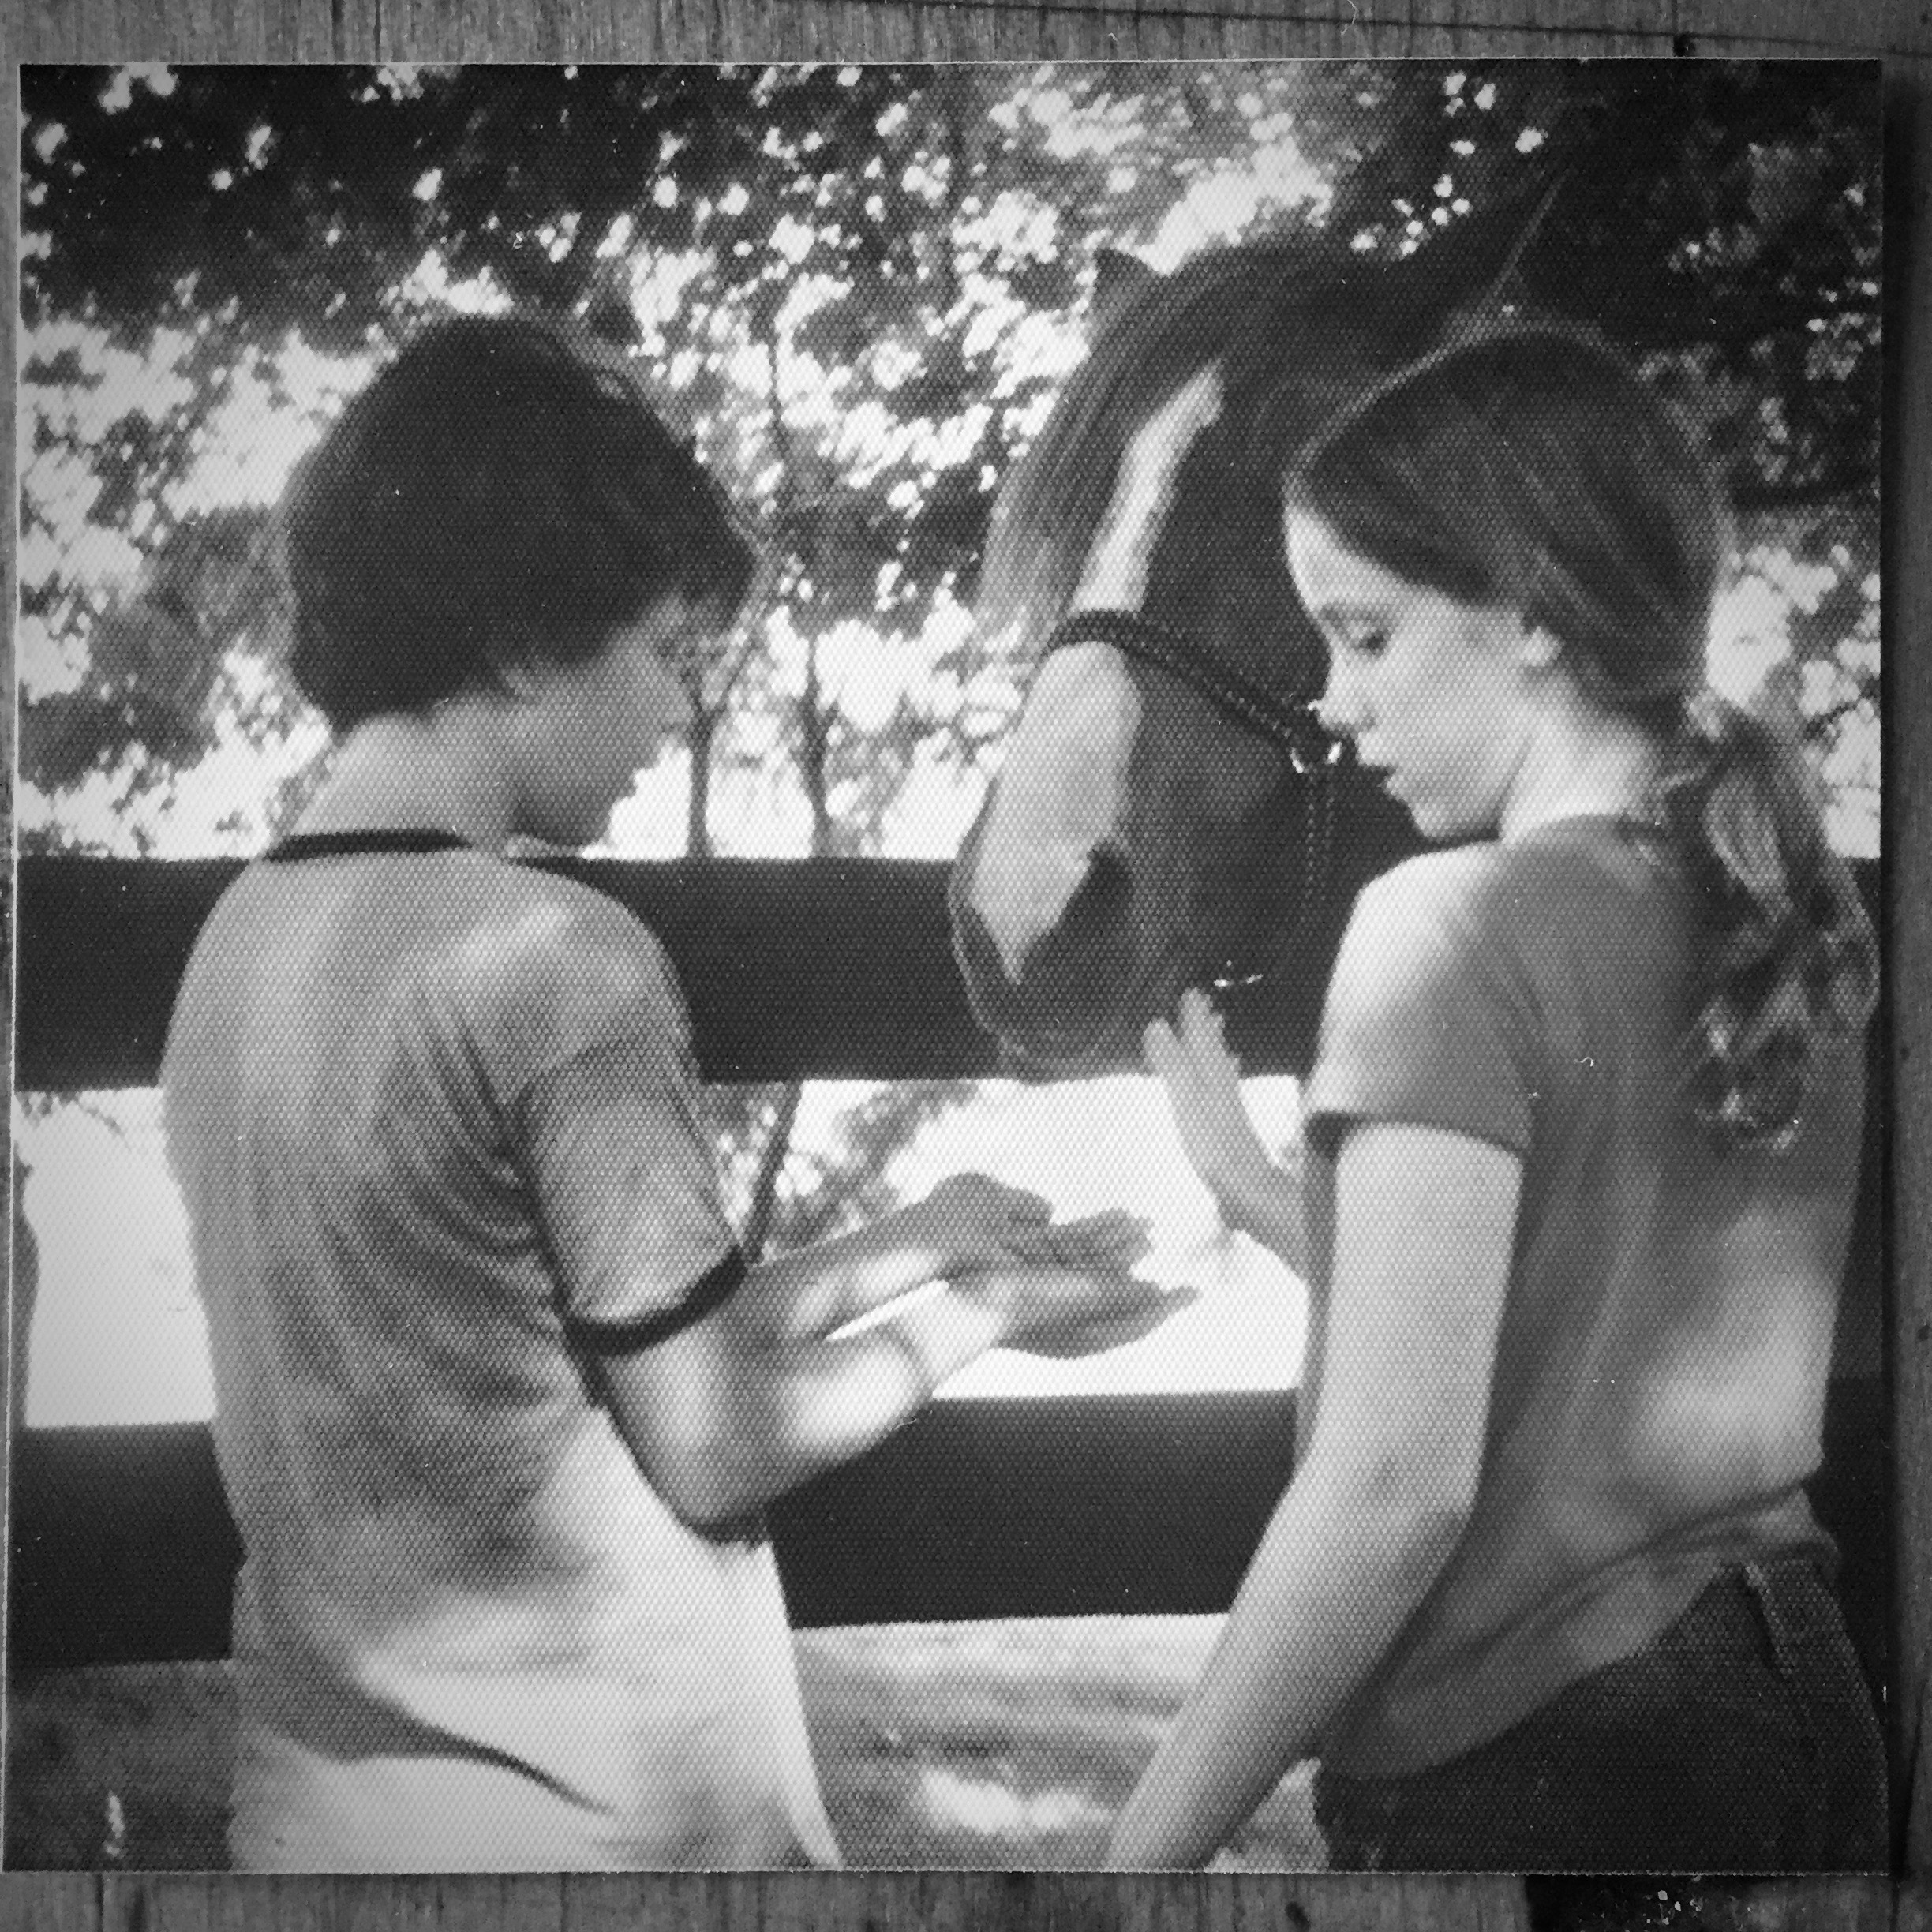 With my cousin, Laura, and Jenny Jones, my first horse, who taught me so much about strength. Nothing teaches responsibility, resilience, and love faster than being knocked off a horse and getting back on. Sometimes it helps to have a trusted confidante give you a hand up!